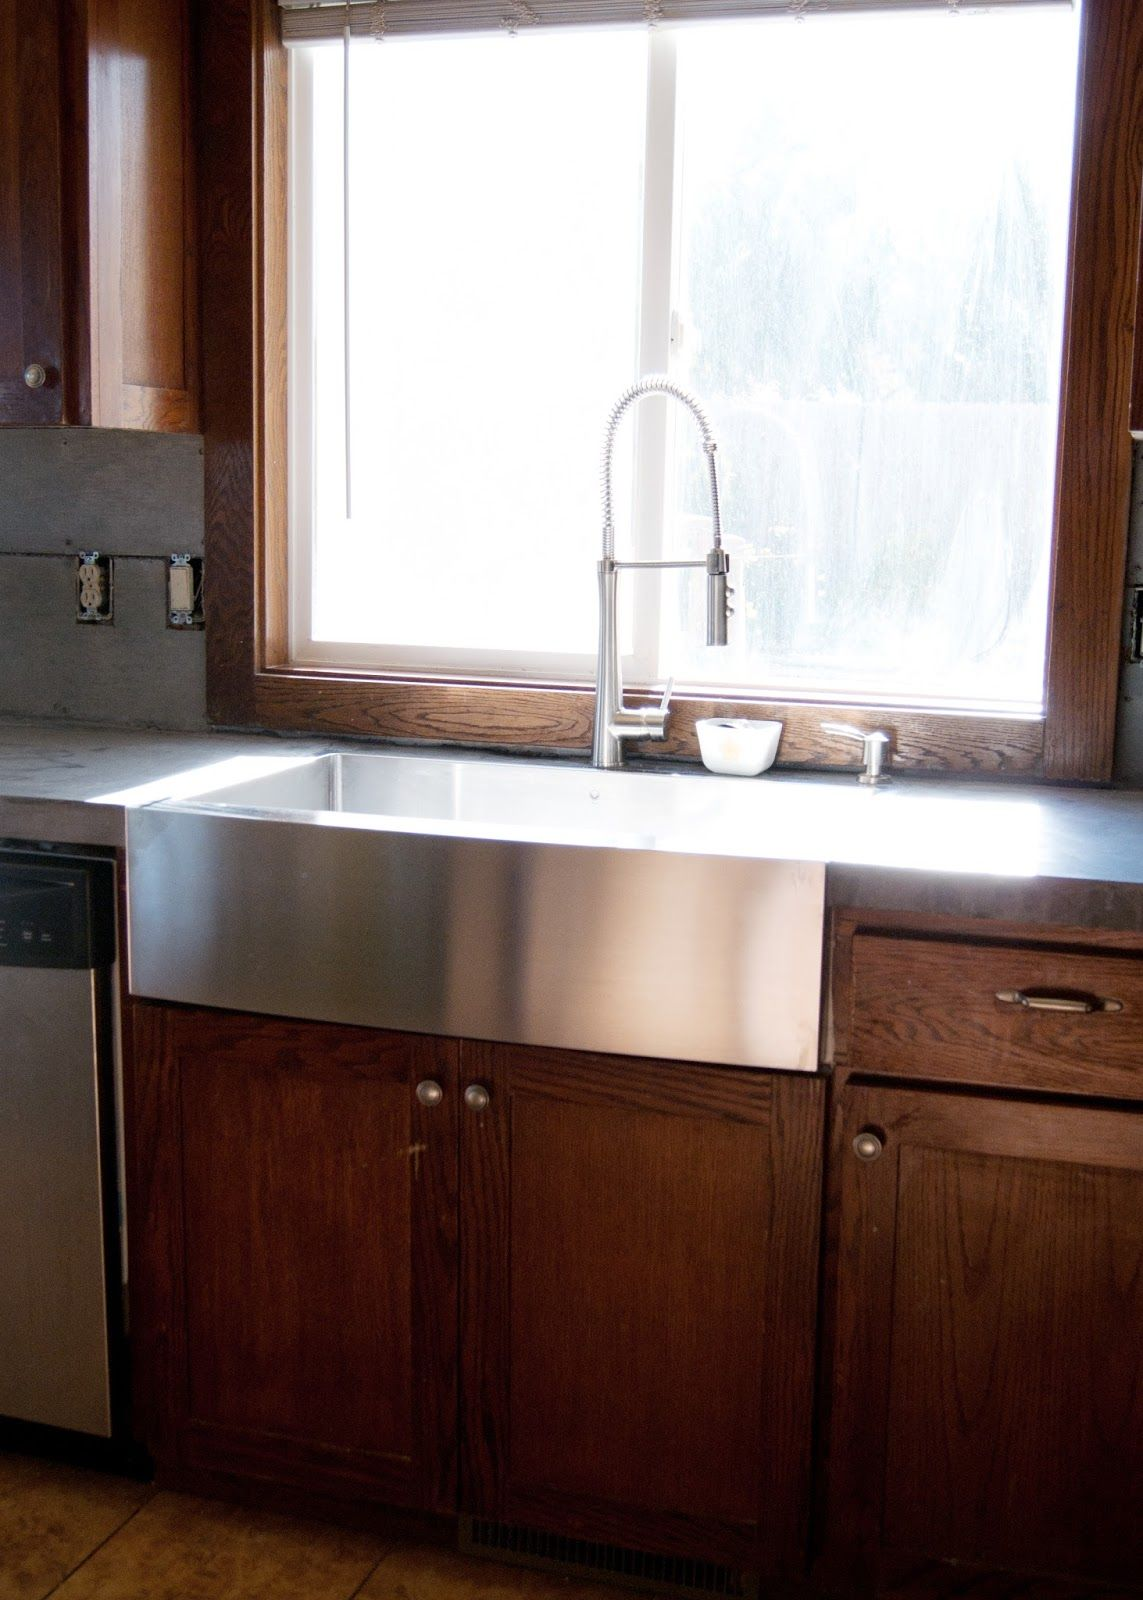 New Stainless Steel Apron Front Sink How We Installed It